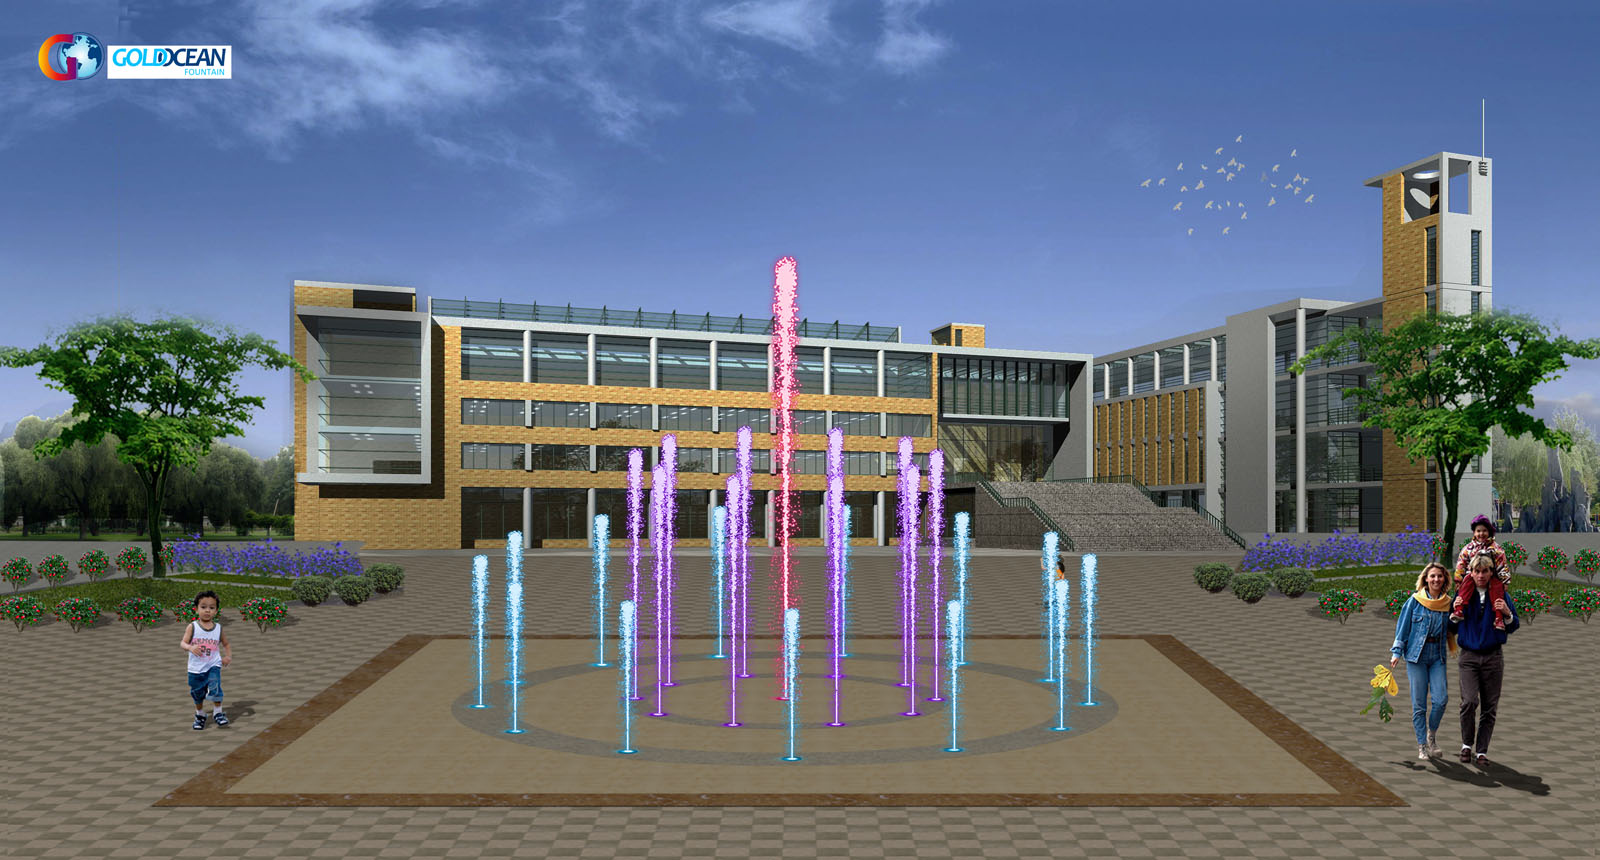 FREE DESIGN Multicolored Water Display LED Dance Floor Fountain